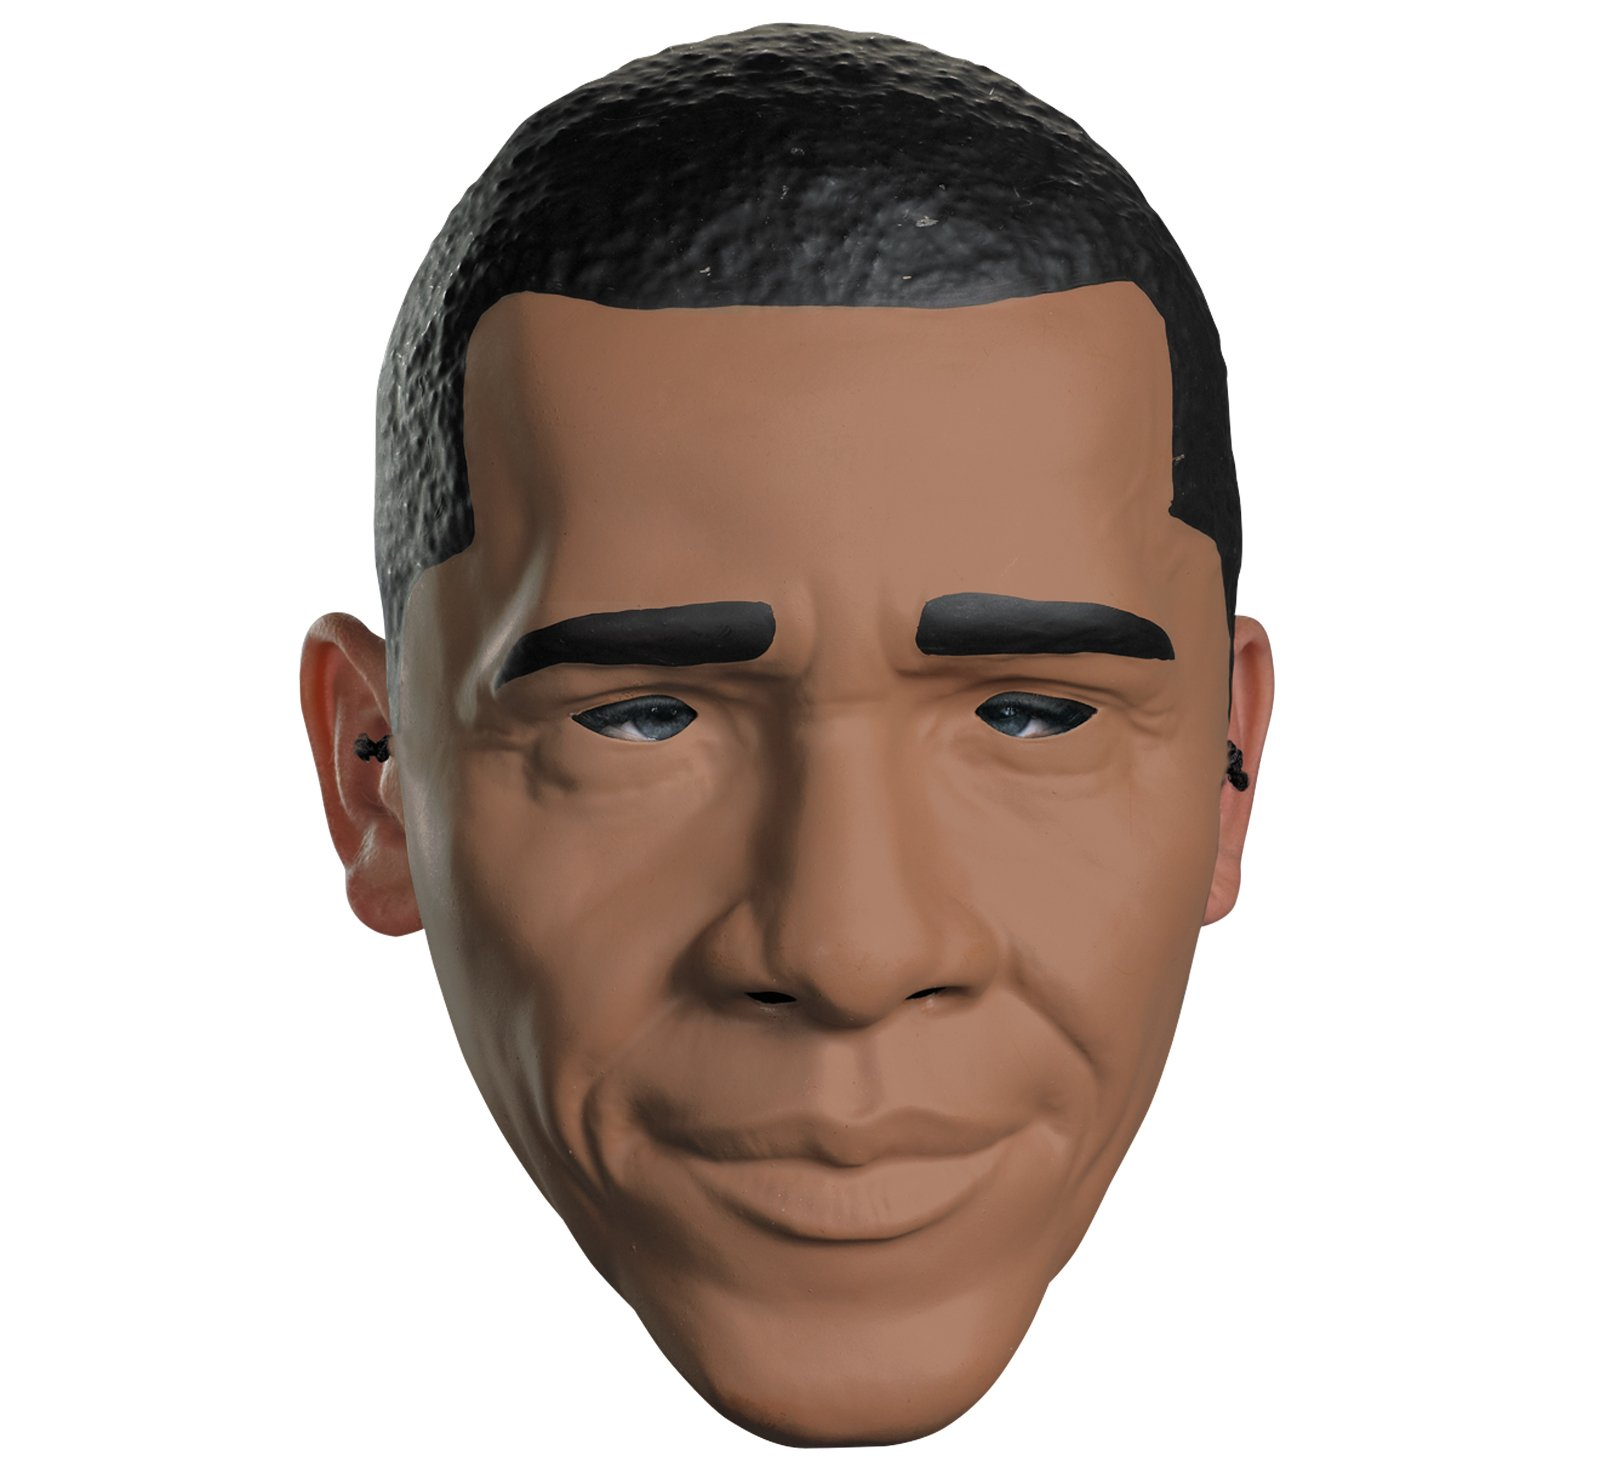 barack obama adult half mask [costume masks, halloween cosutme] - in